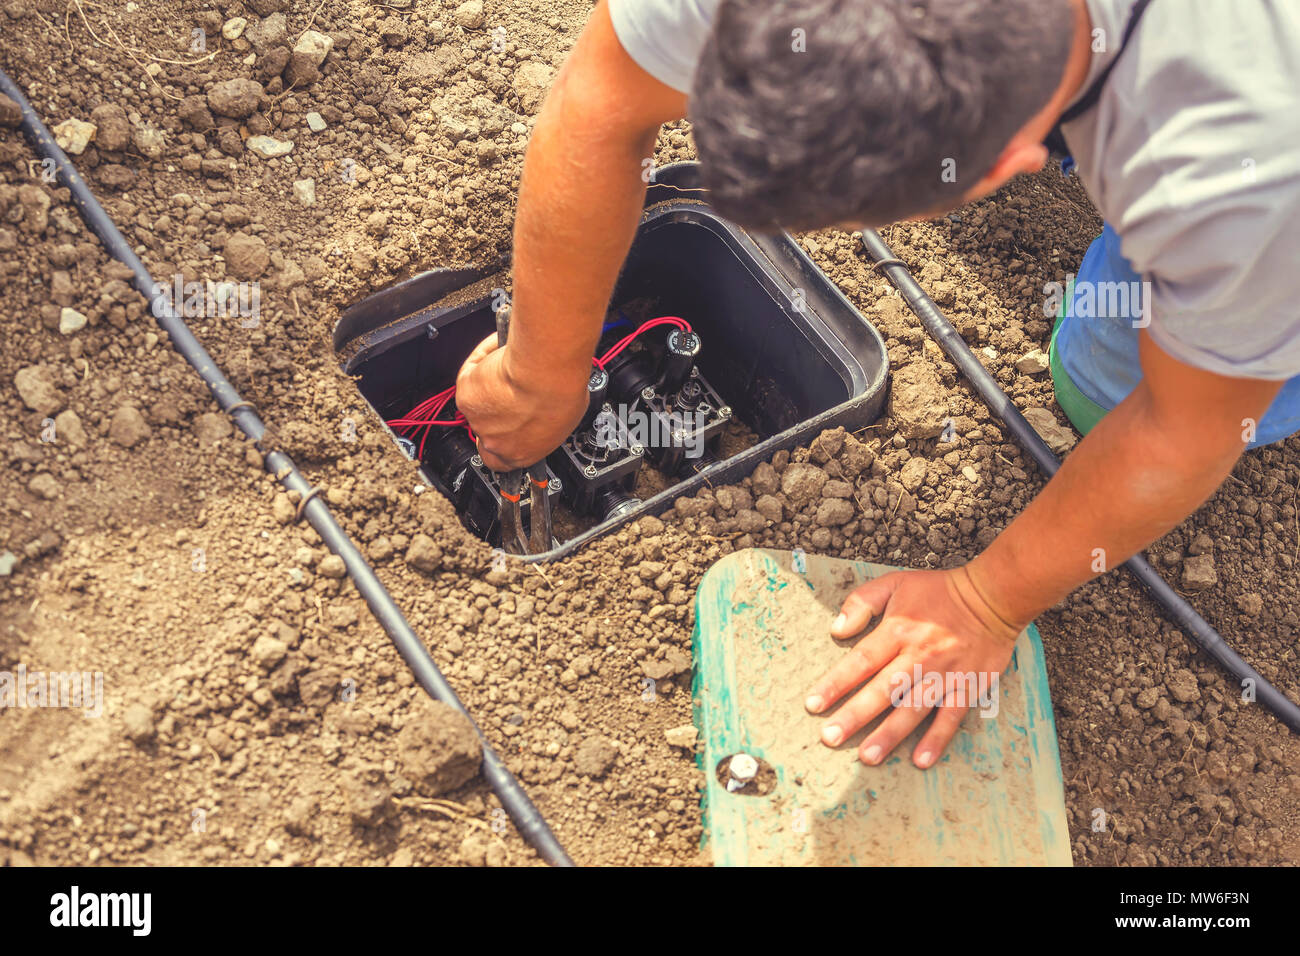 Installing A Subsurface Drip Irrigation System Psa